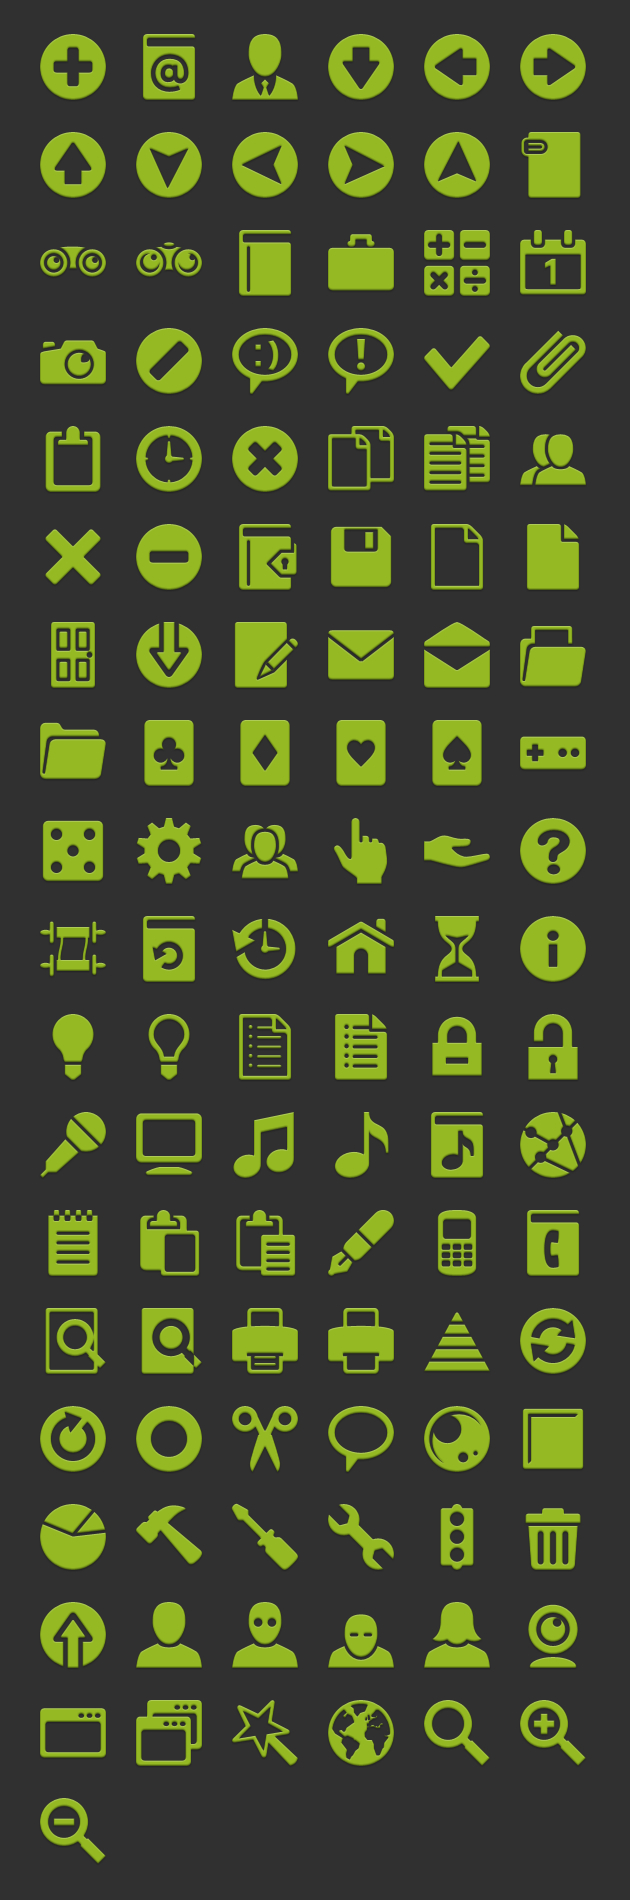 android icons general launcher hdpi